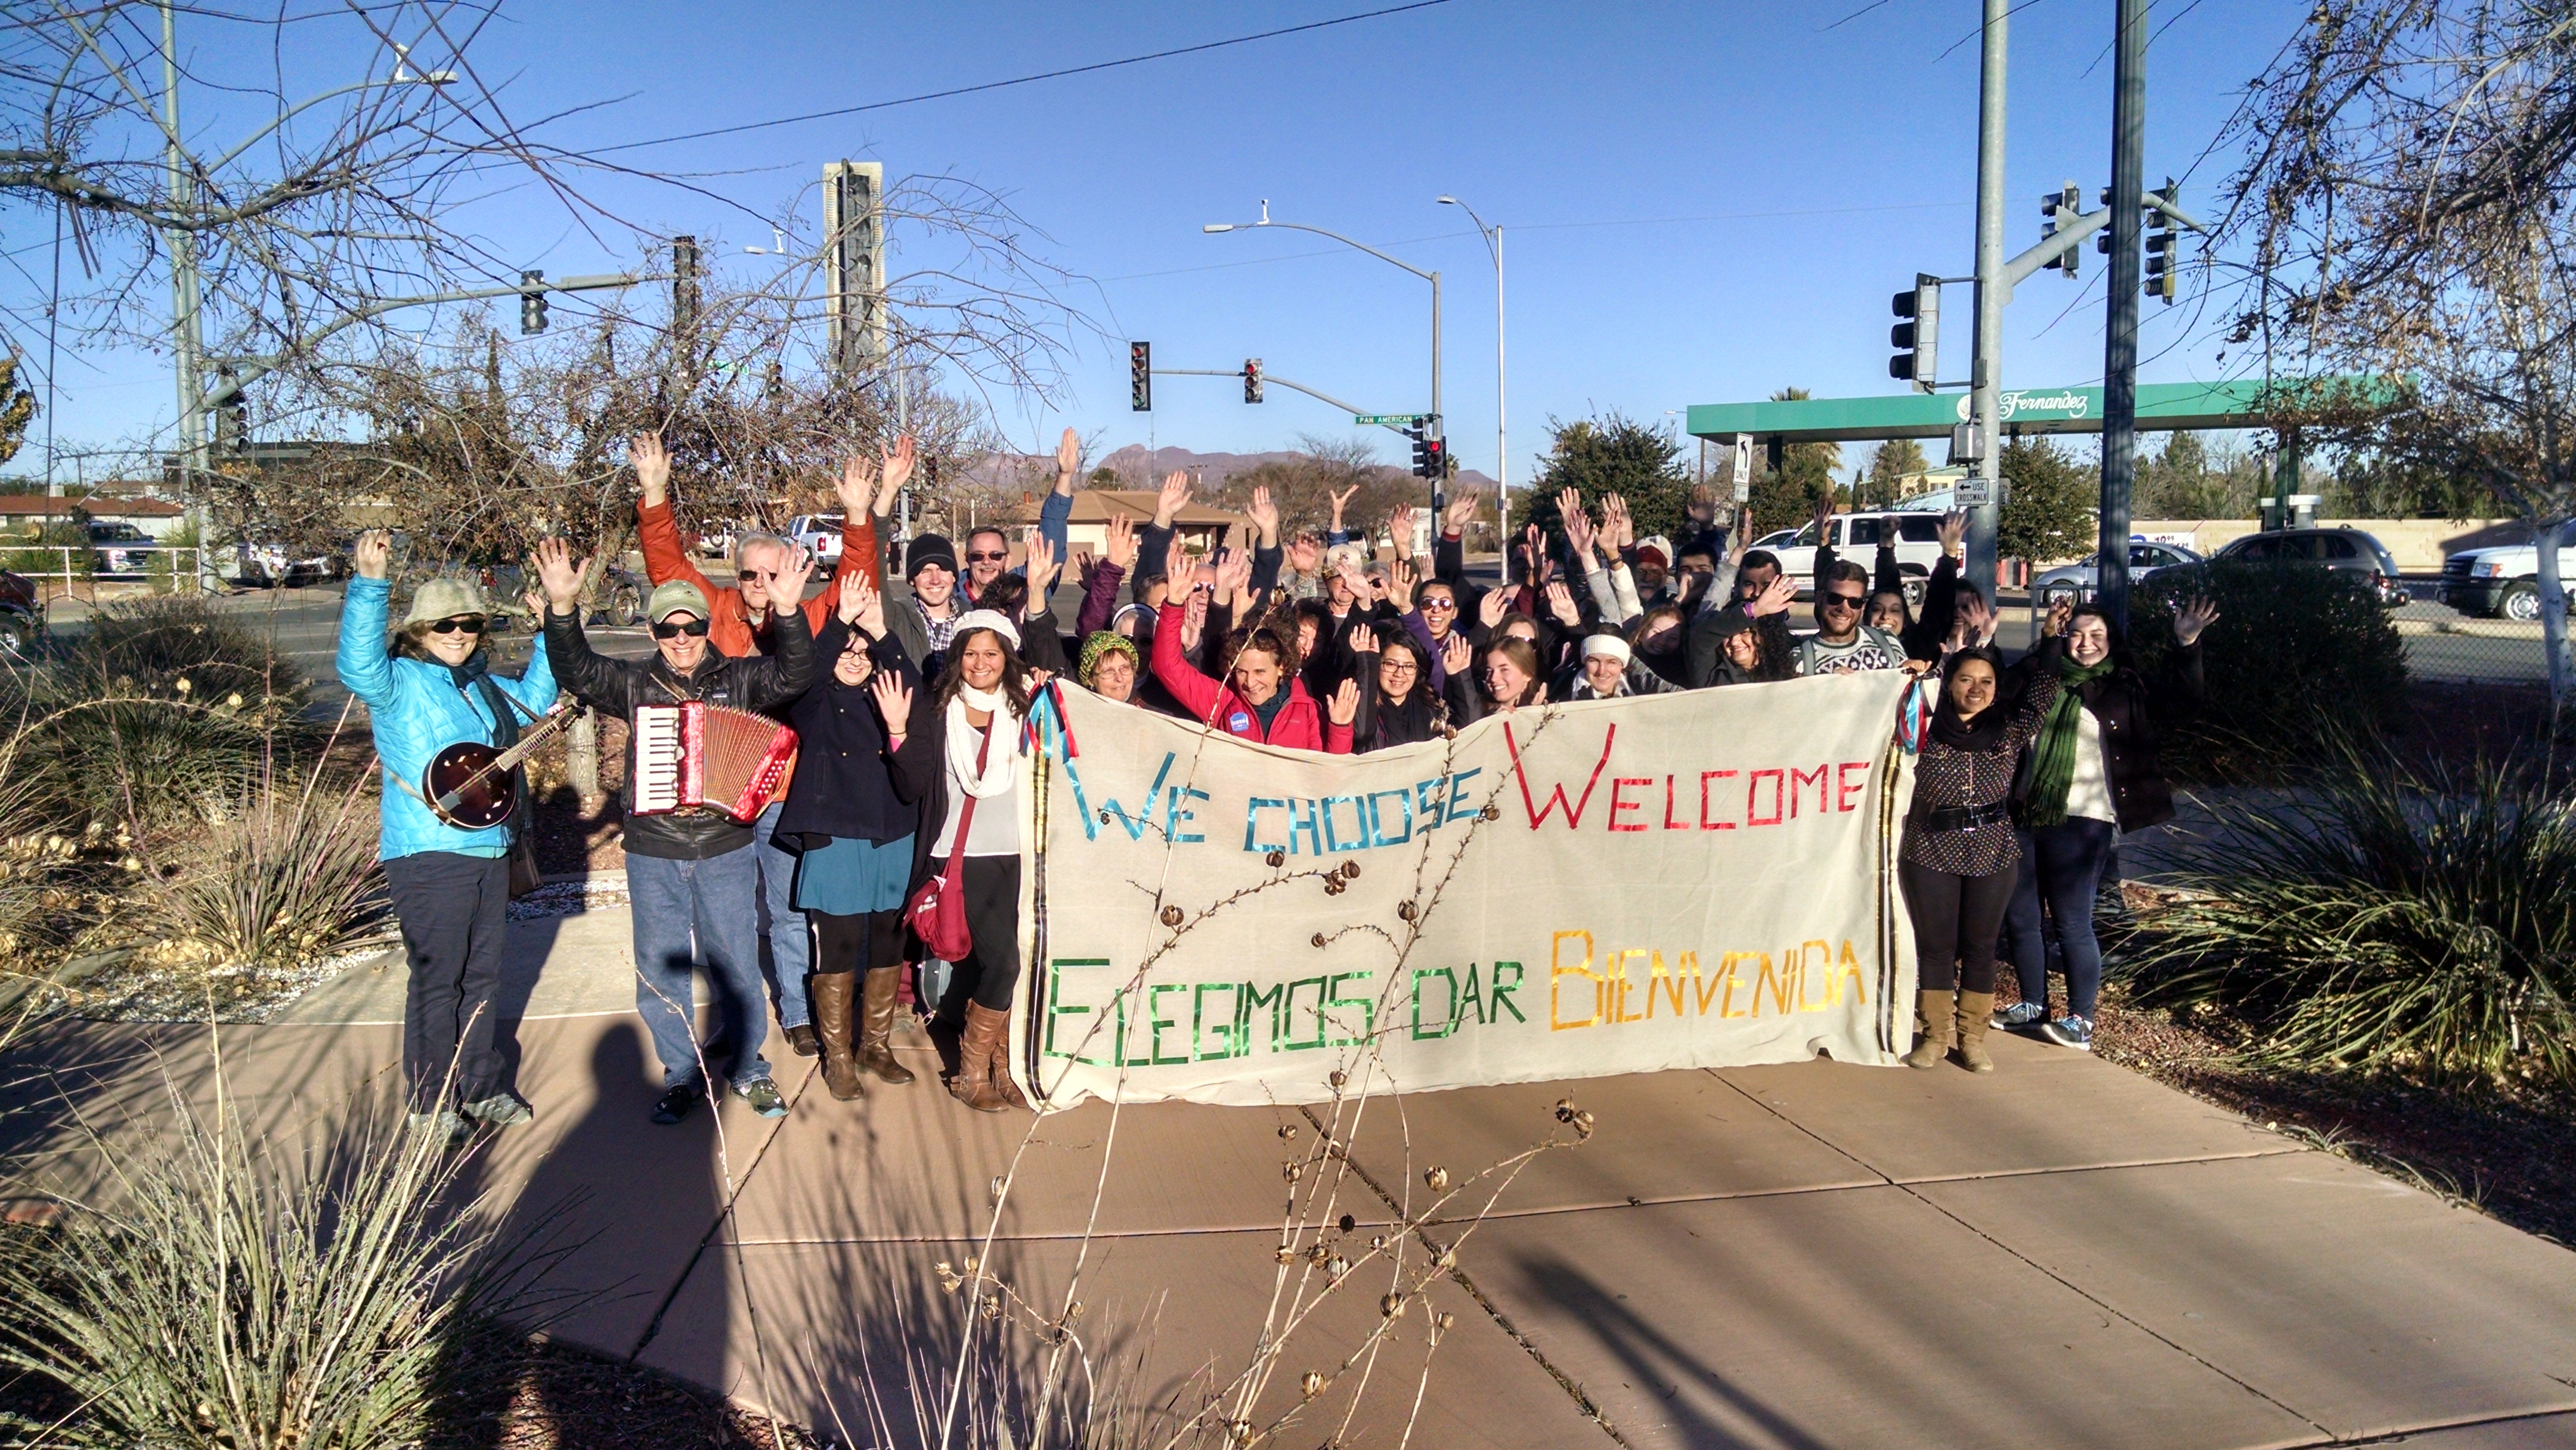 We Choose Welcome: Our community wants the border as a place of welcome and encounter, not a place of fear and division